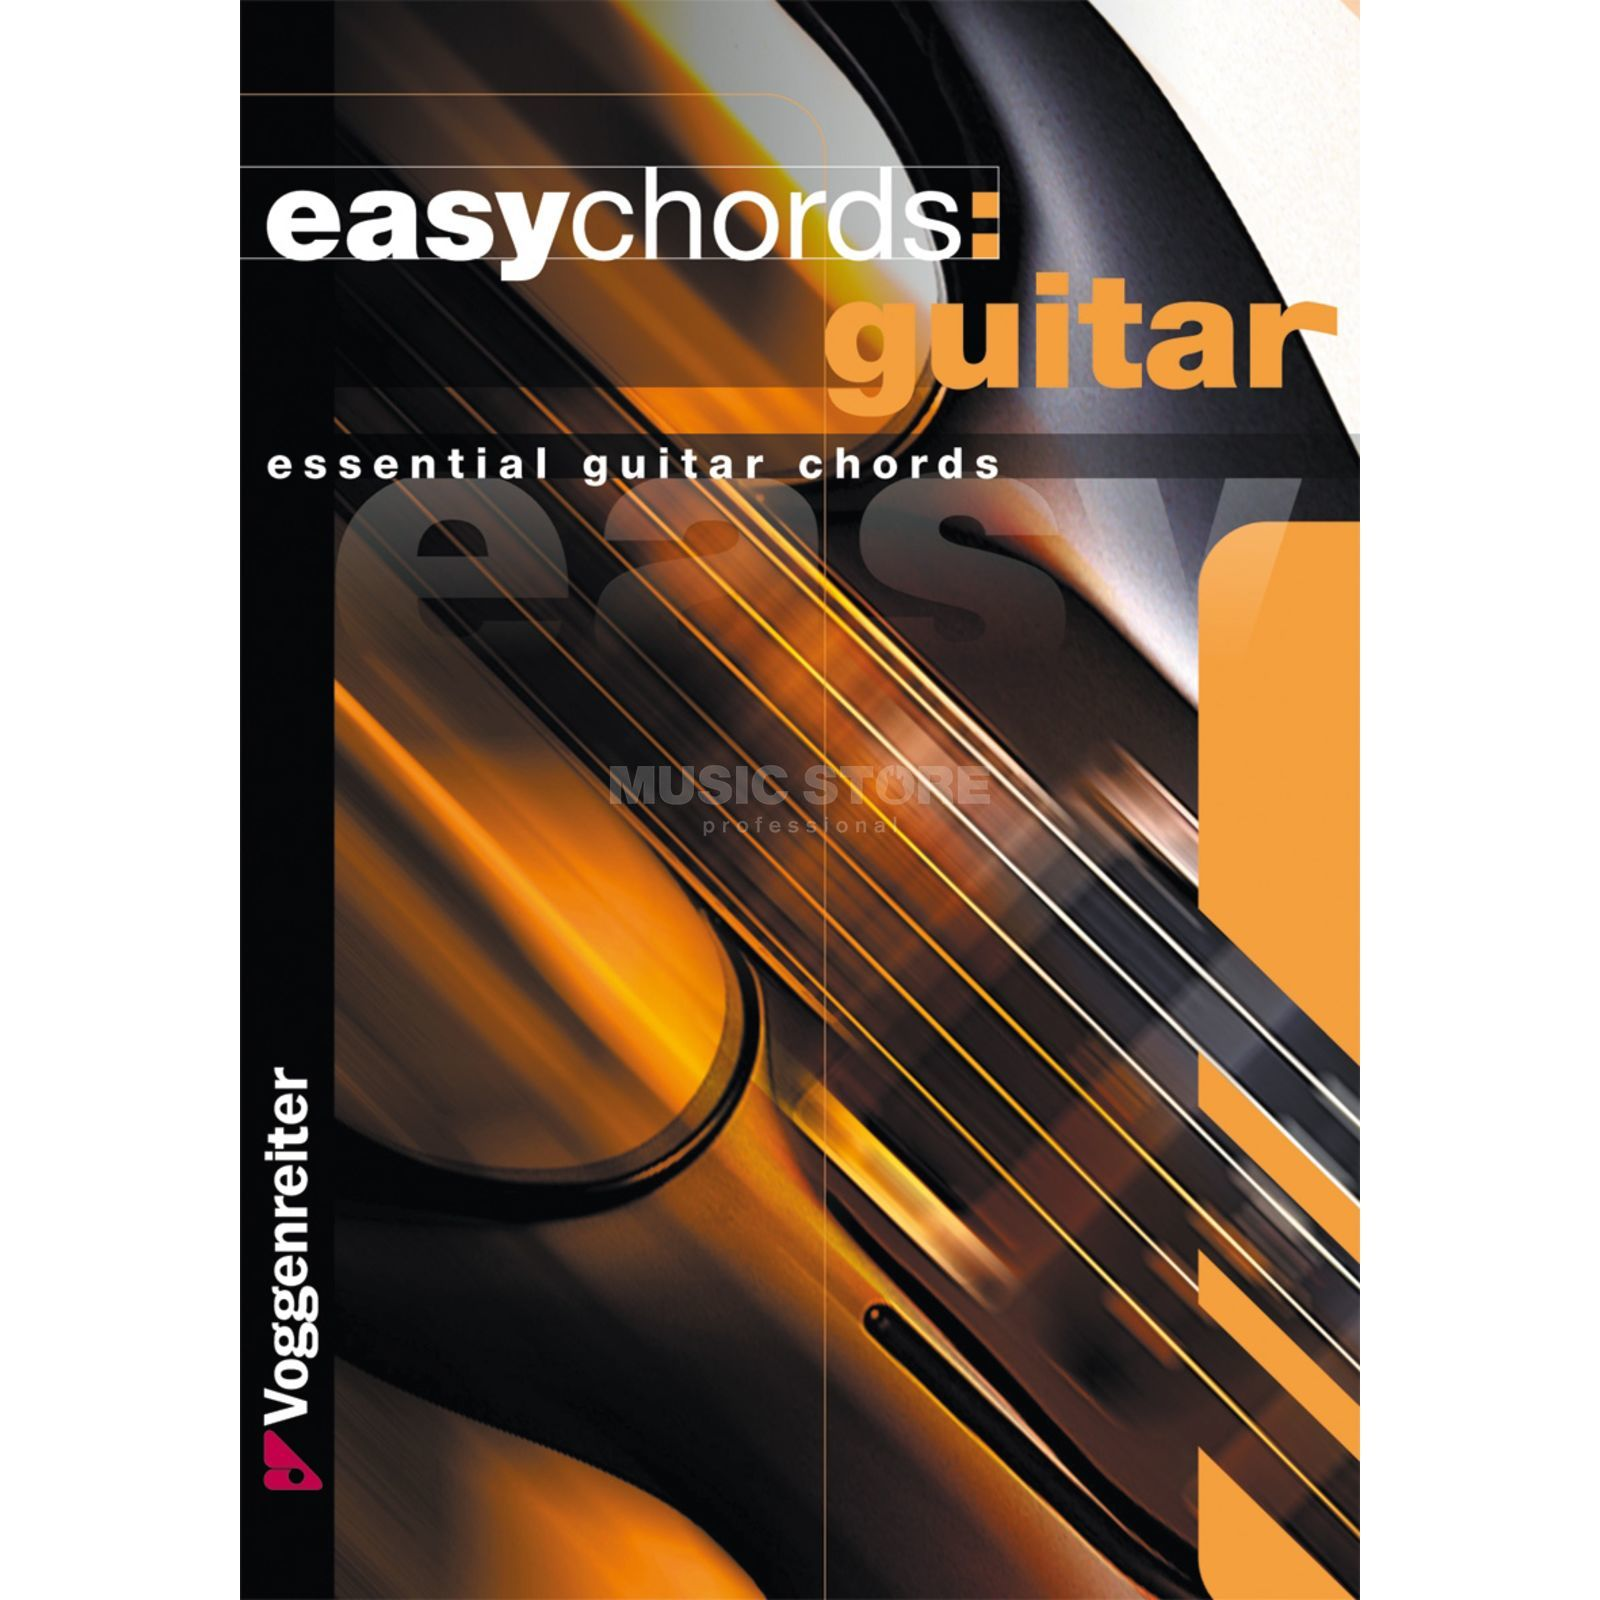 Voggenreiter Easy Chords Guitar ENGLISH Bessler & Opgenoorth Produktbild